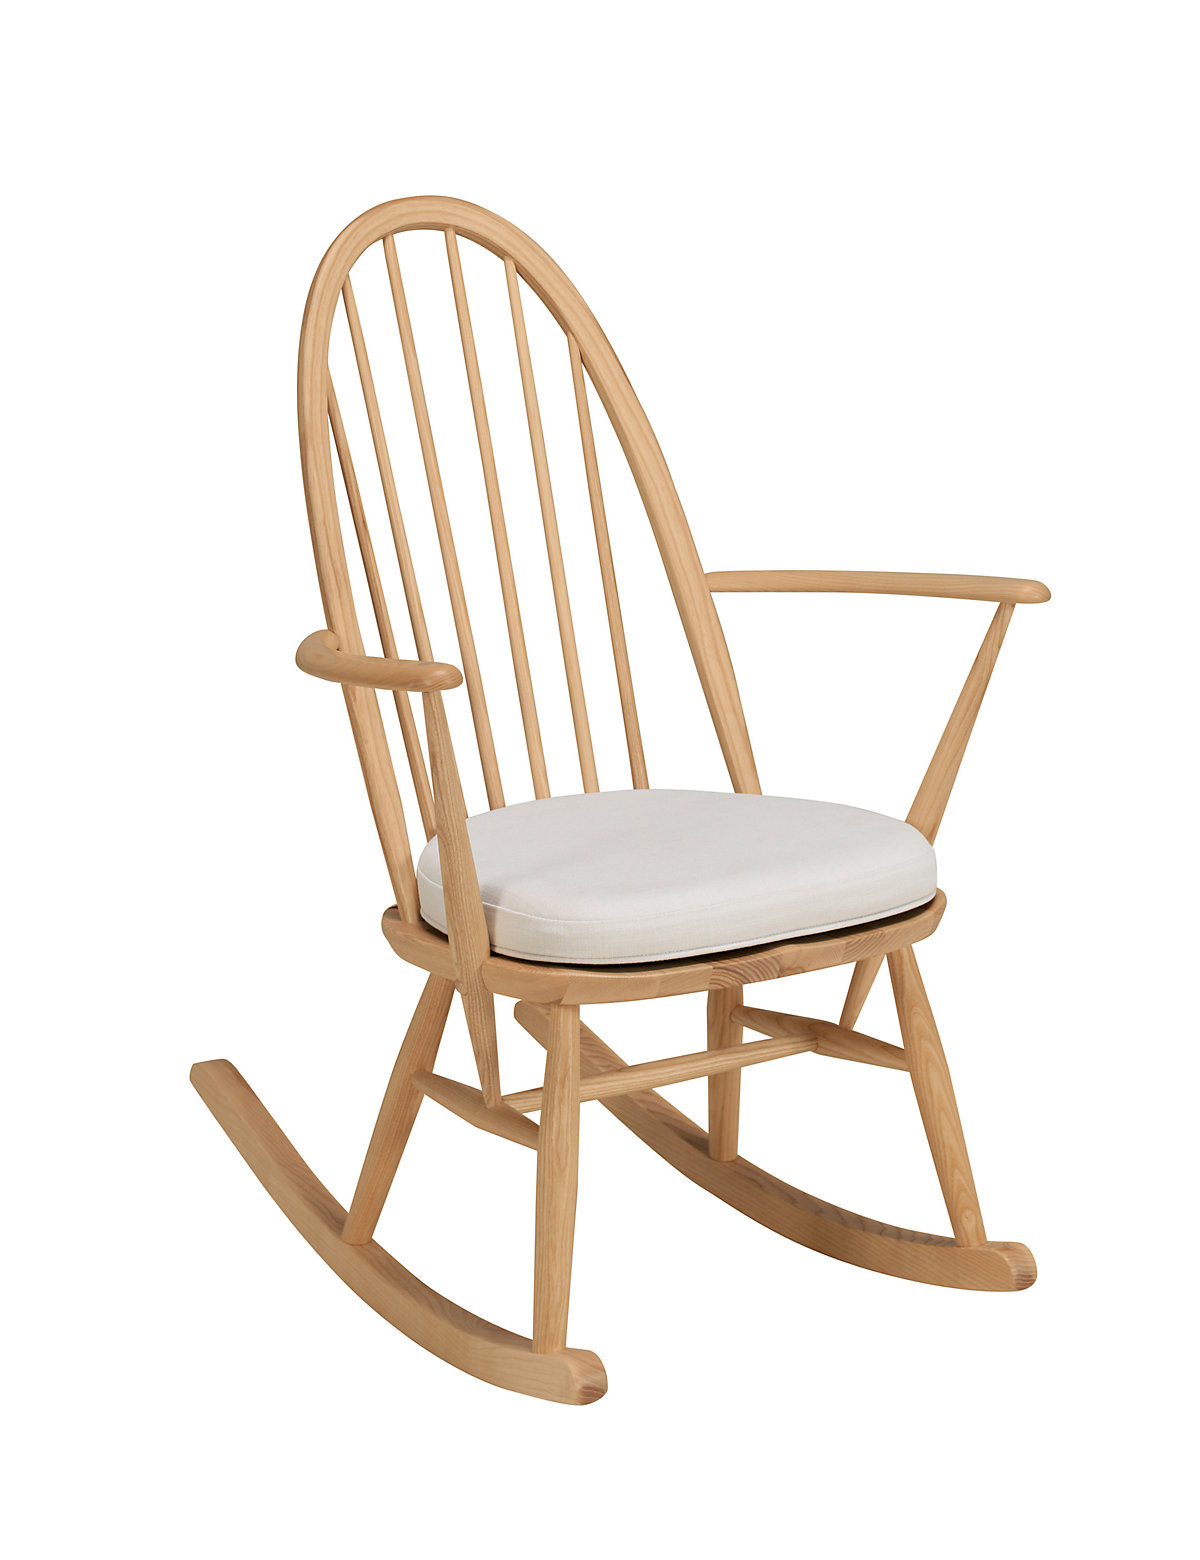 hamble rocking chair a collaboration between m s and british furniture ...